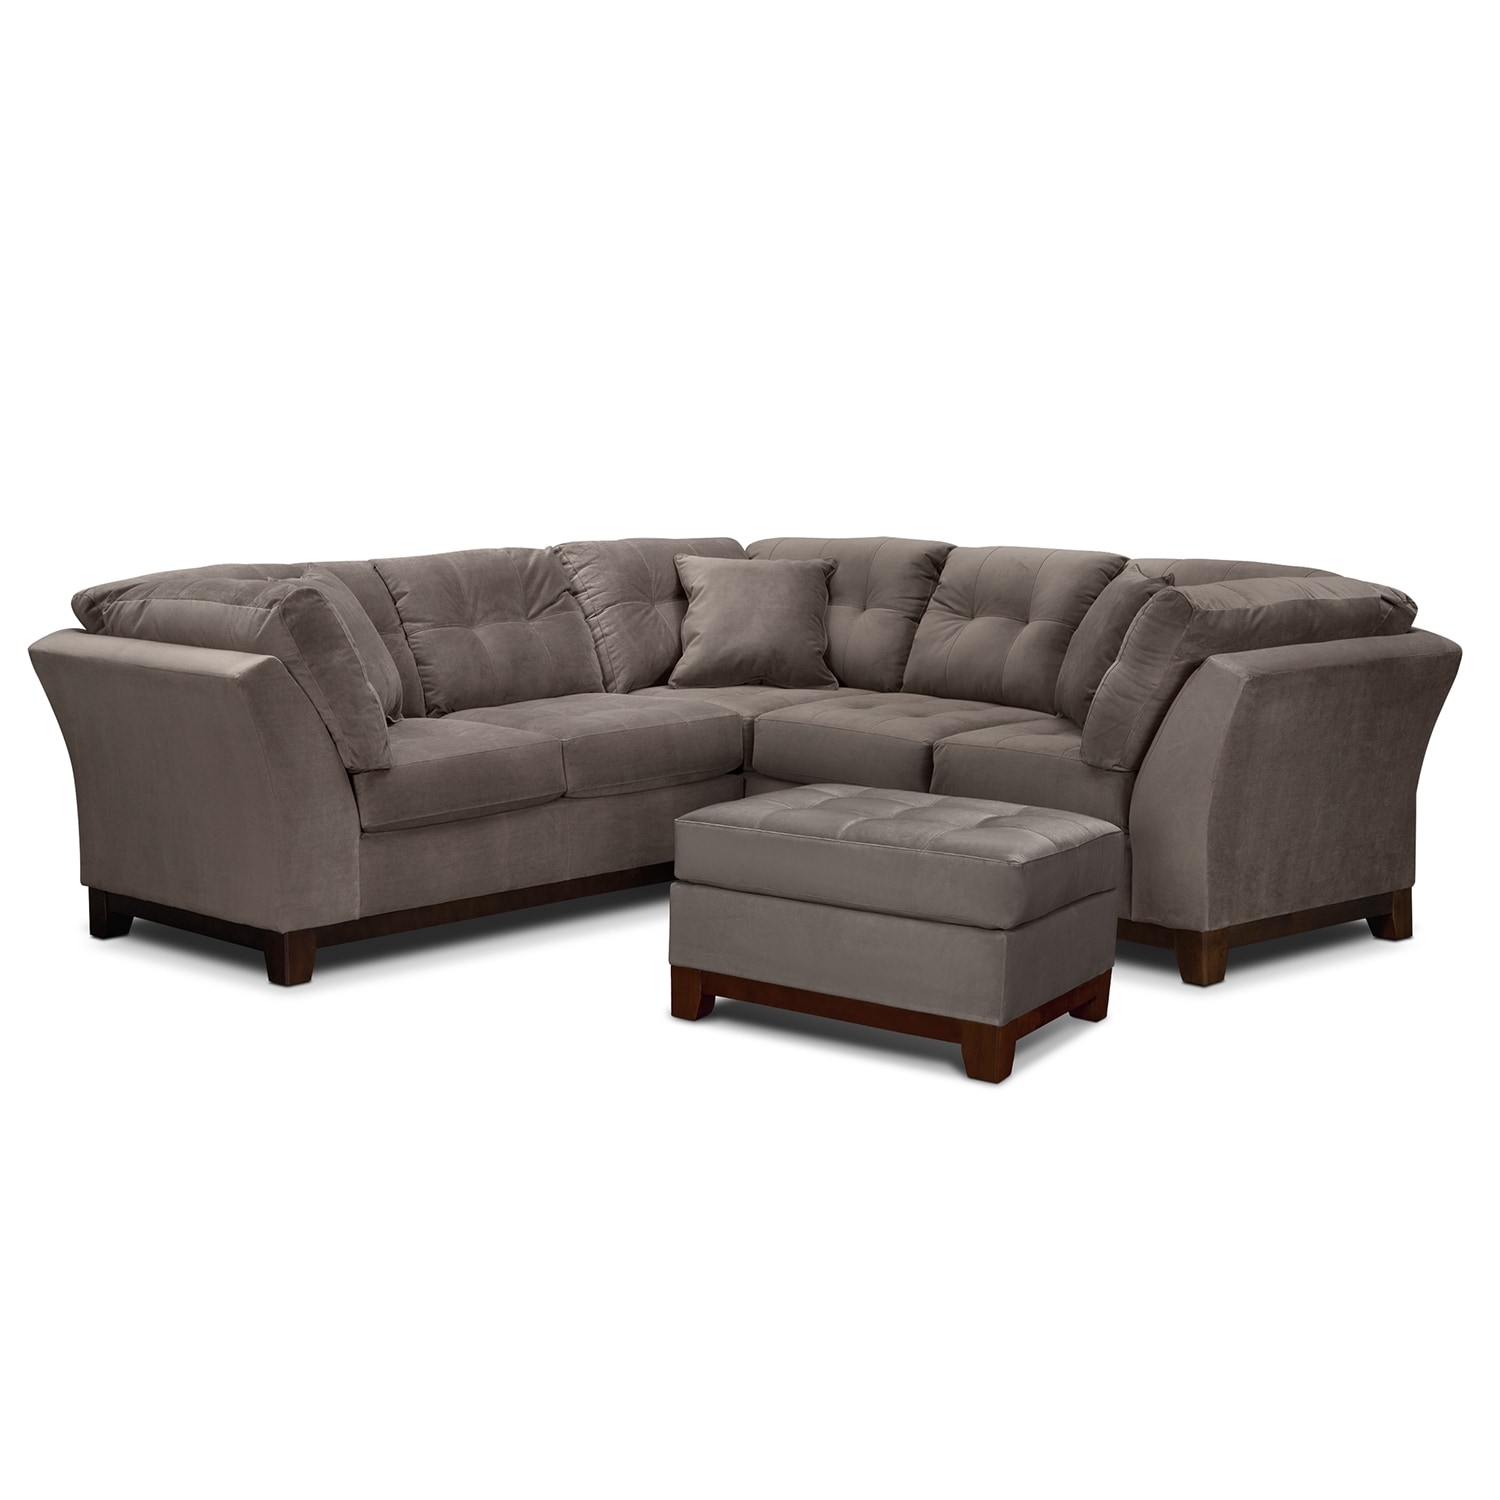 Living Room Furniture - Solace Gray II 2 Pc. Sectional (Alternate II Reverse) and Ottoman